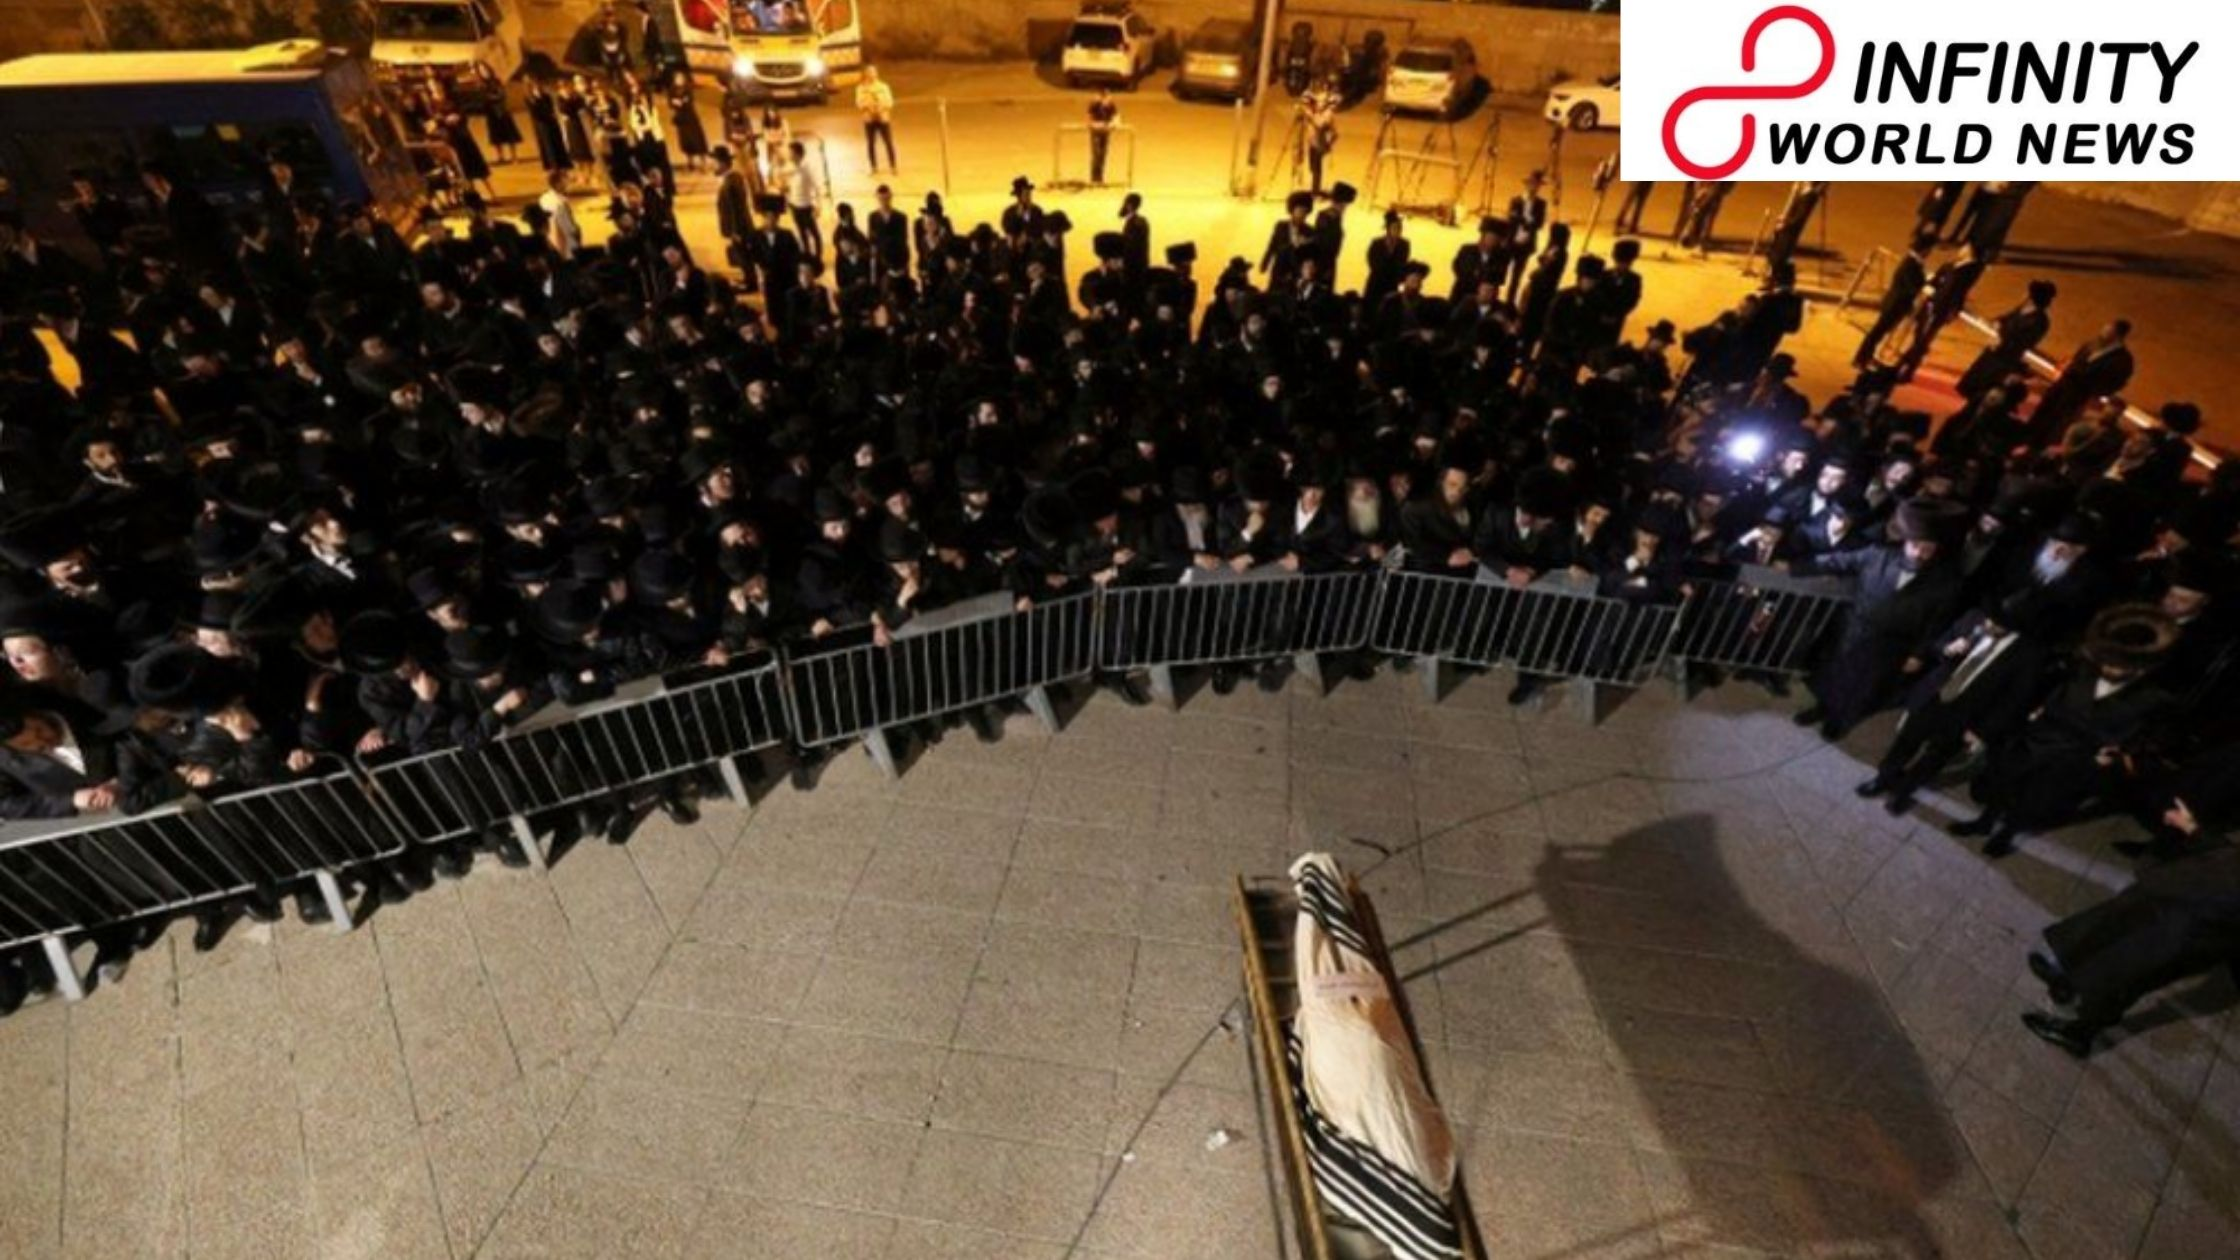 Israel pound: Day of grieving after handfuls killed at Jewish celebration